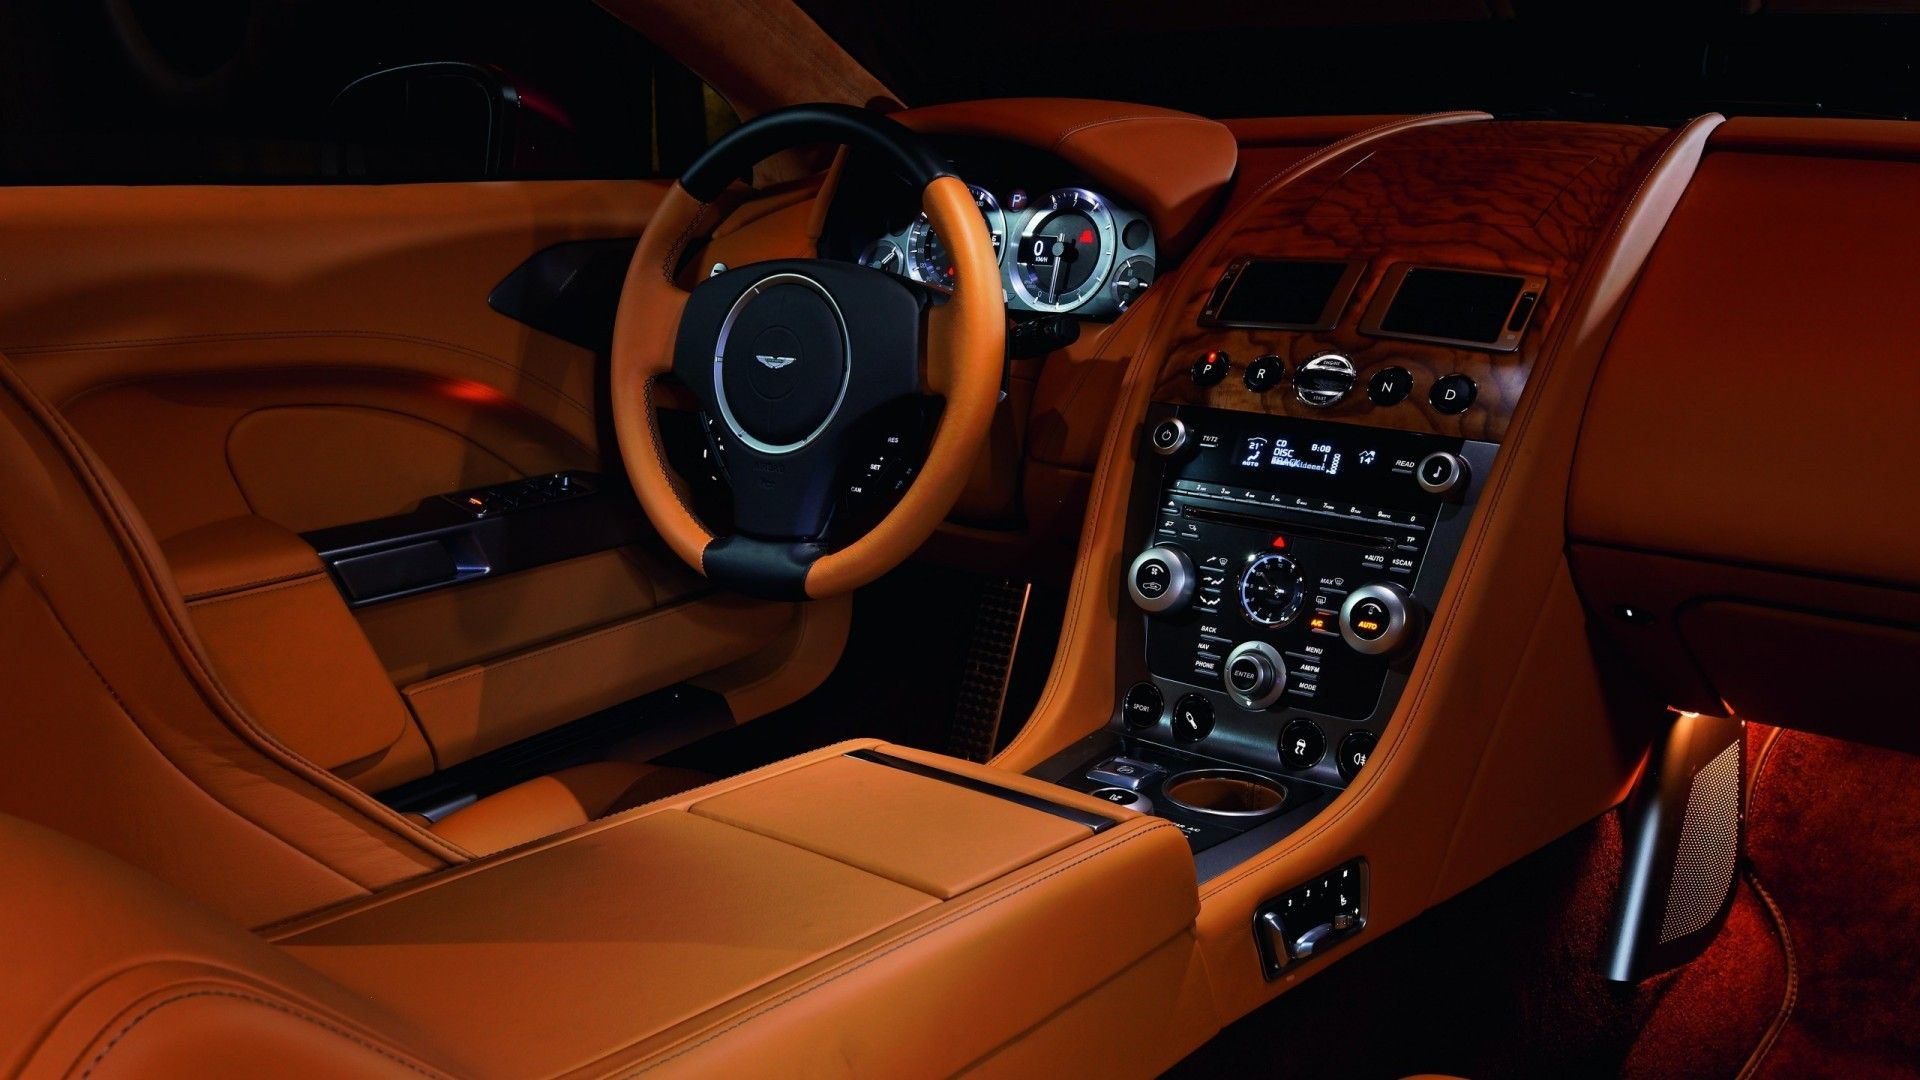 Excellent Car Interior Wallpaper 4040 1920 x 1080 - WallpaperLayer.com